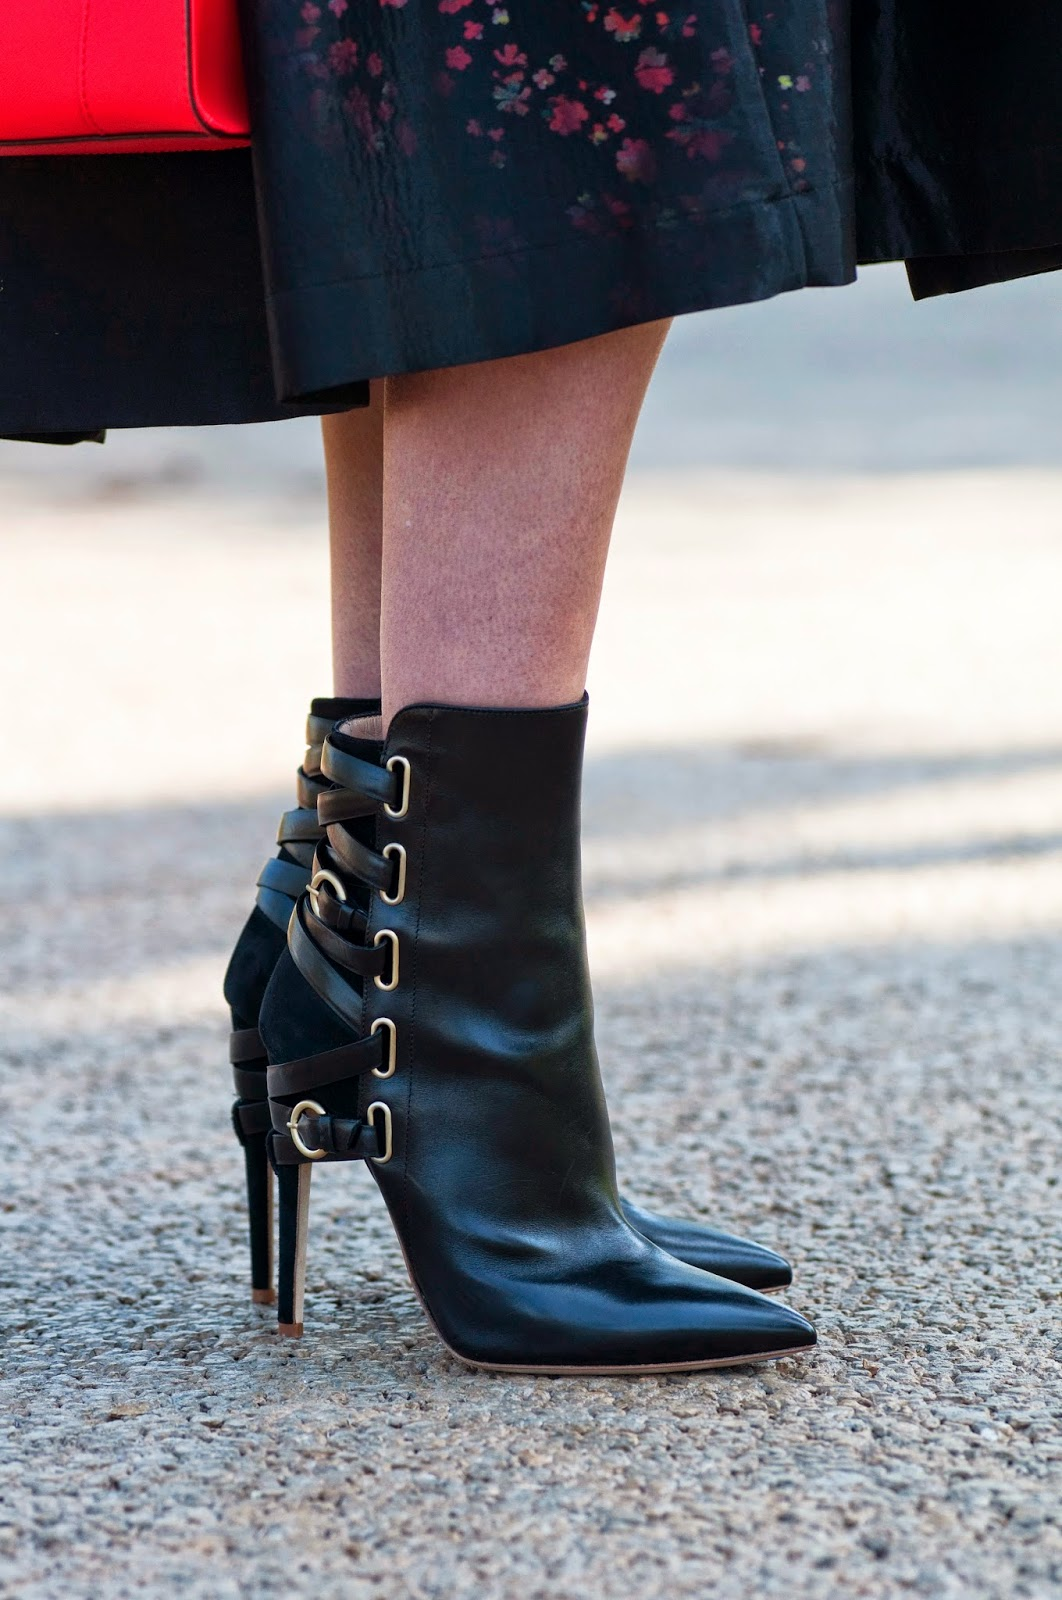 jerlme-rousseau-ankle-booties-with-straps